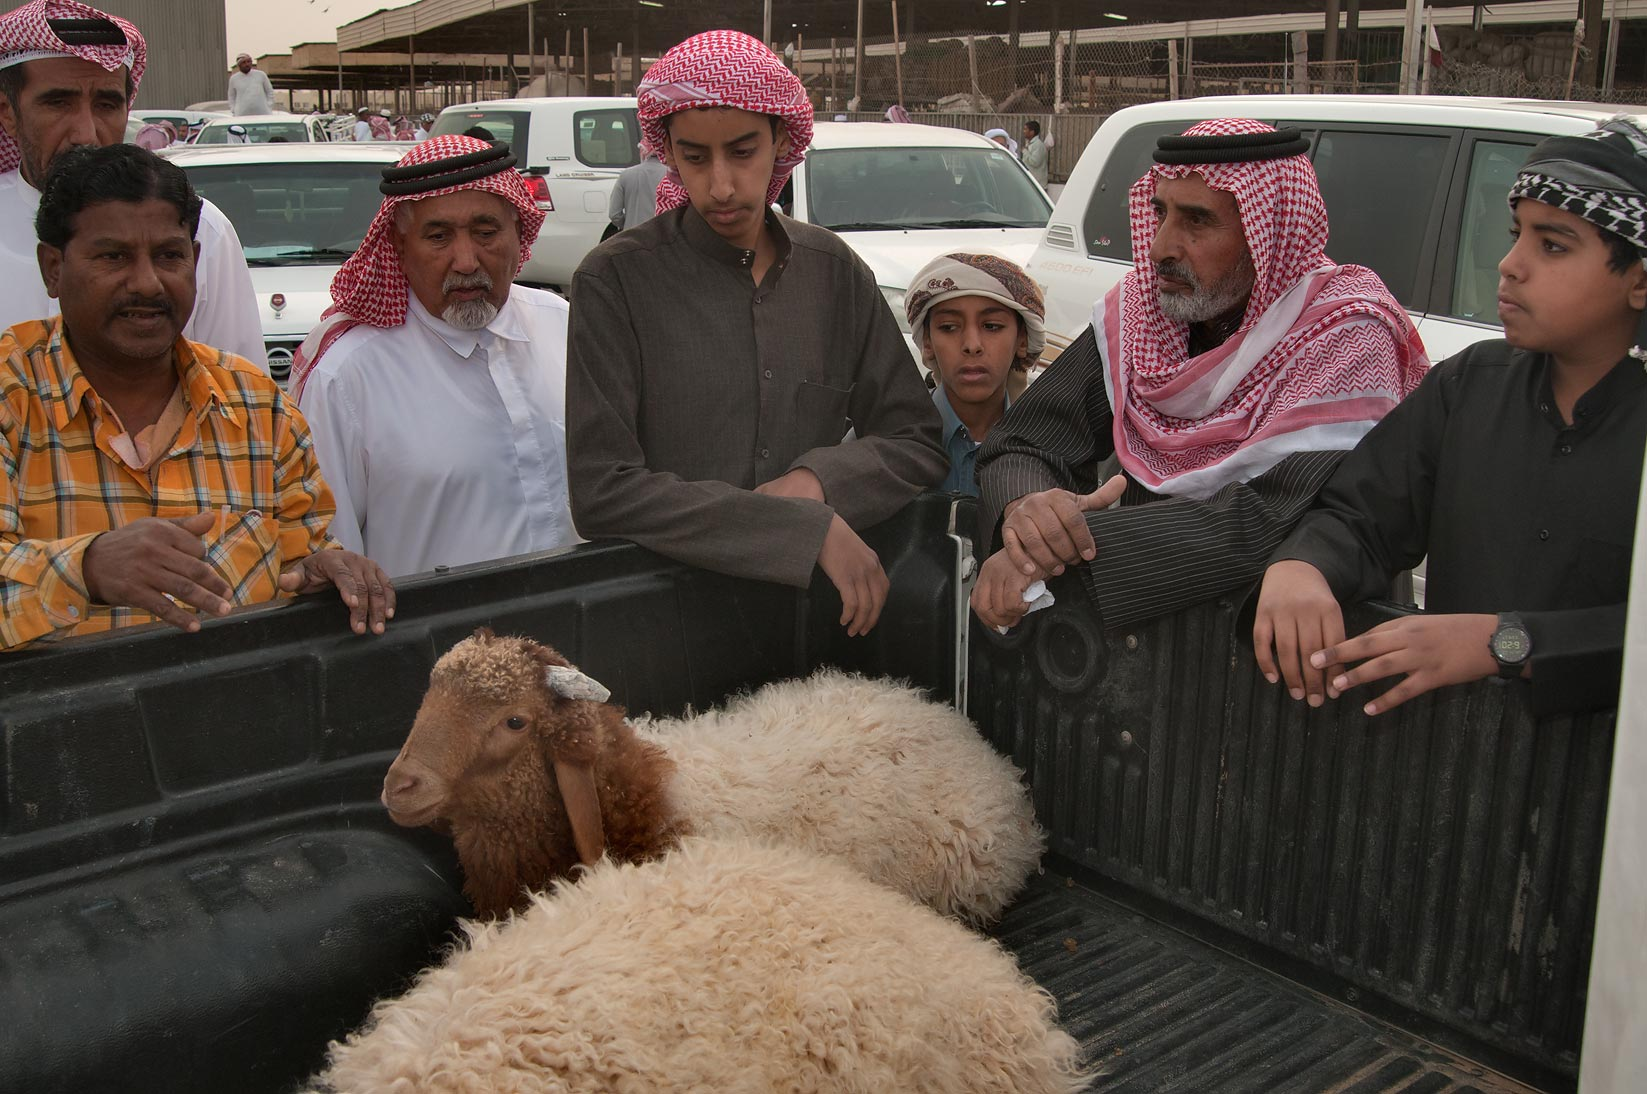 Gathering around an animal in a truck in Sheep Market, Wholesale Markets area. Doha, Qatar